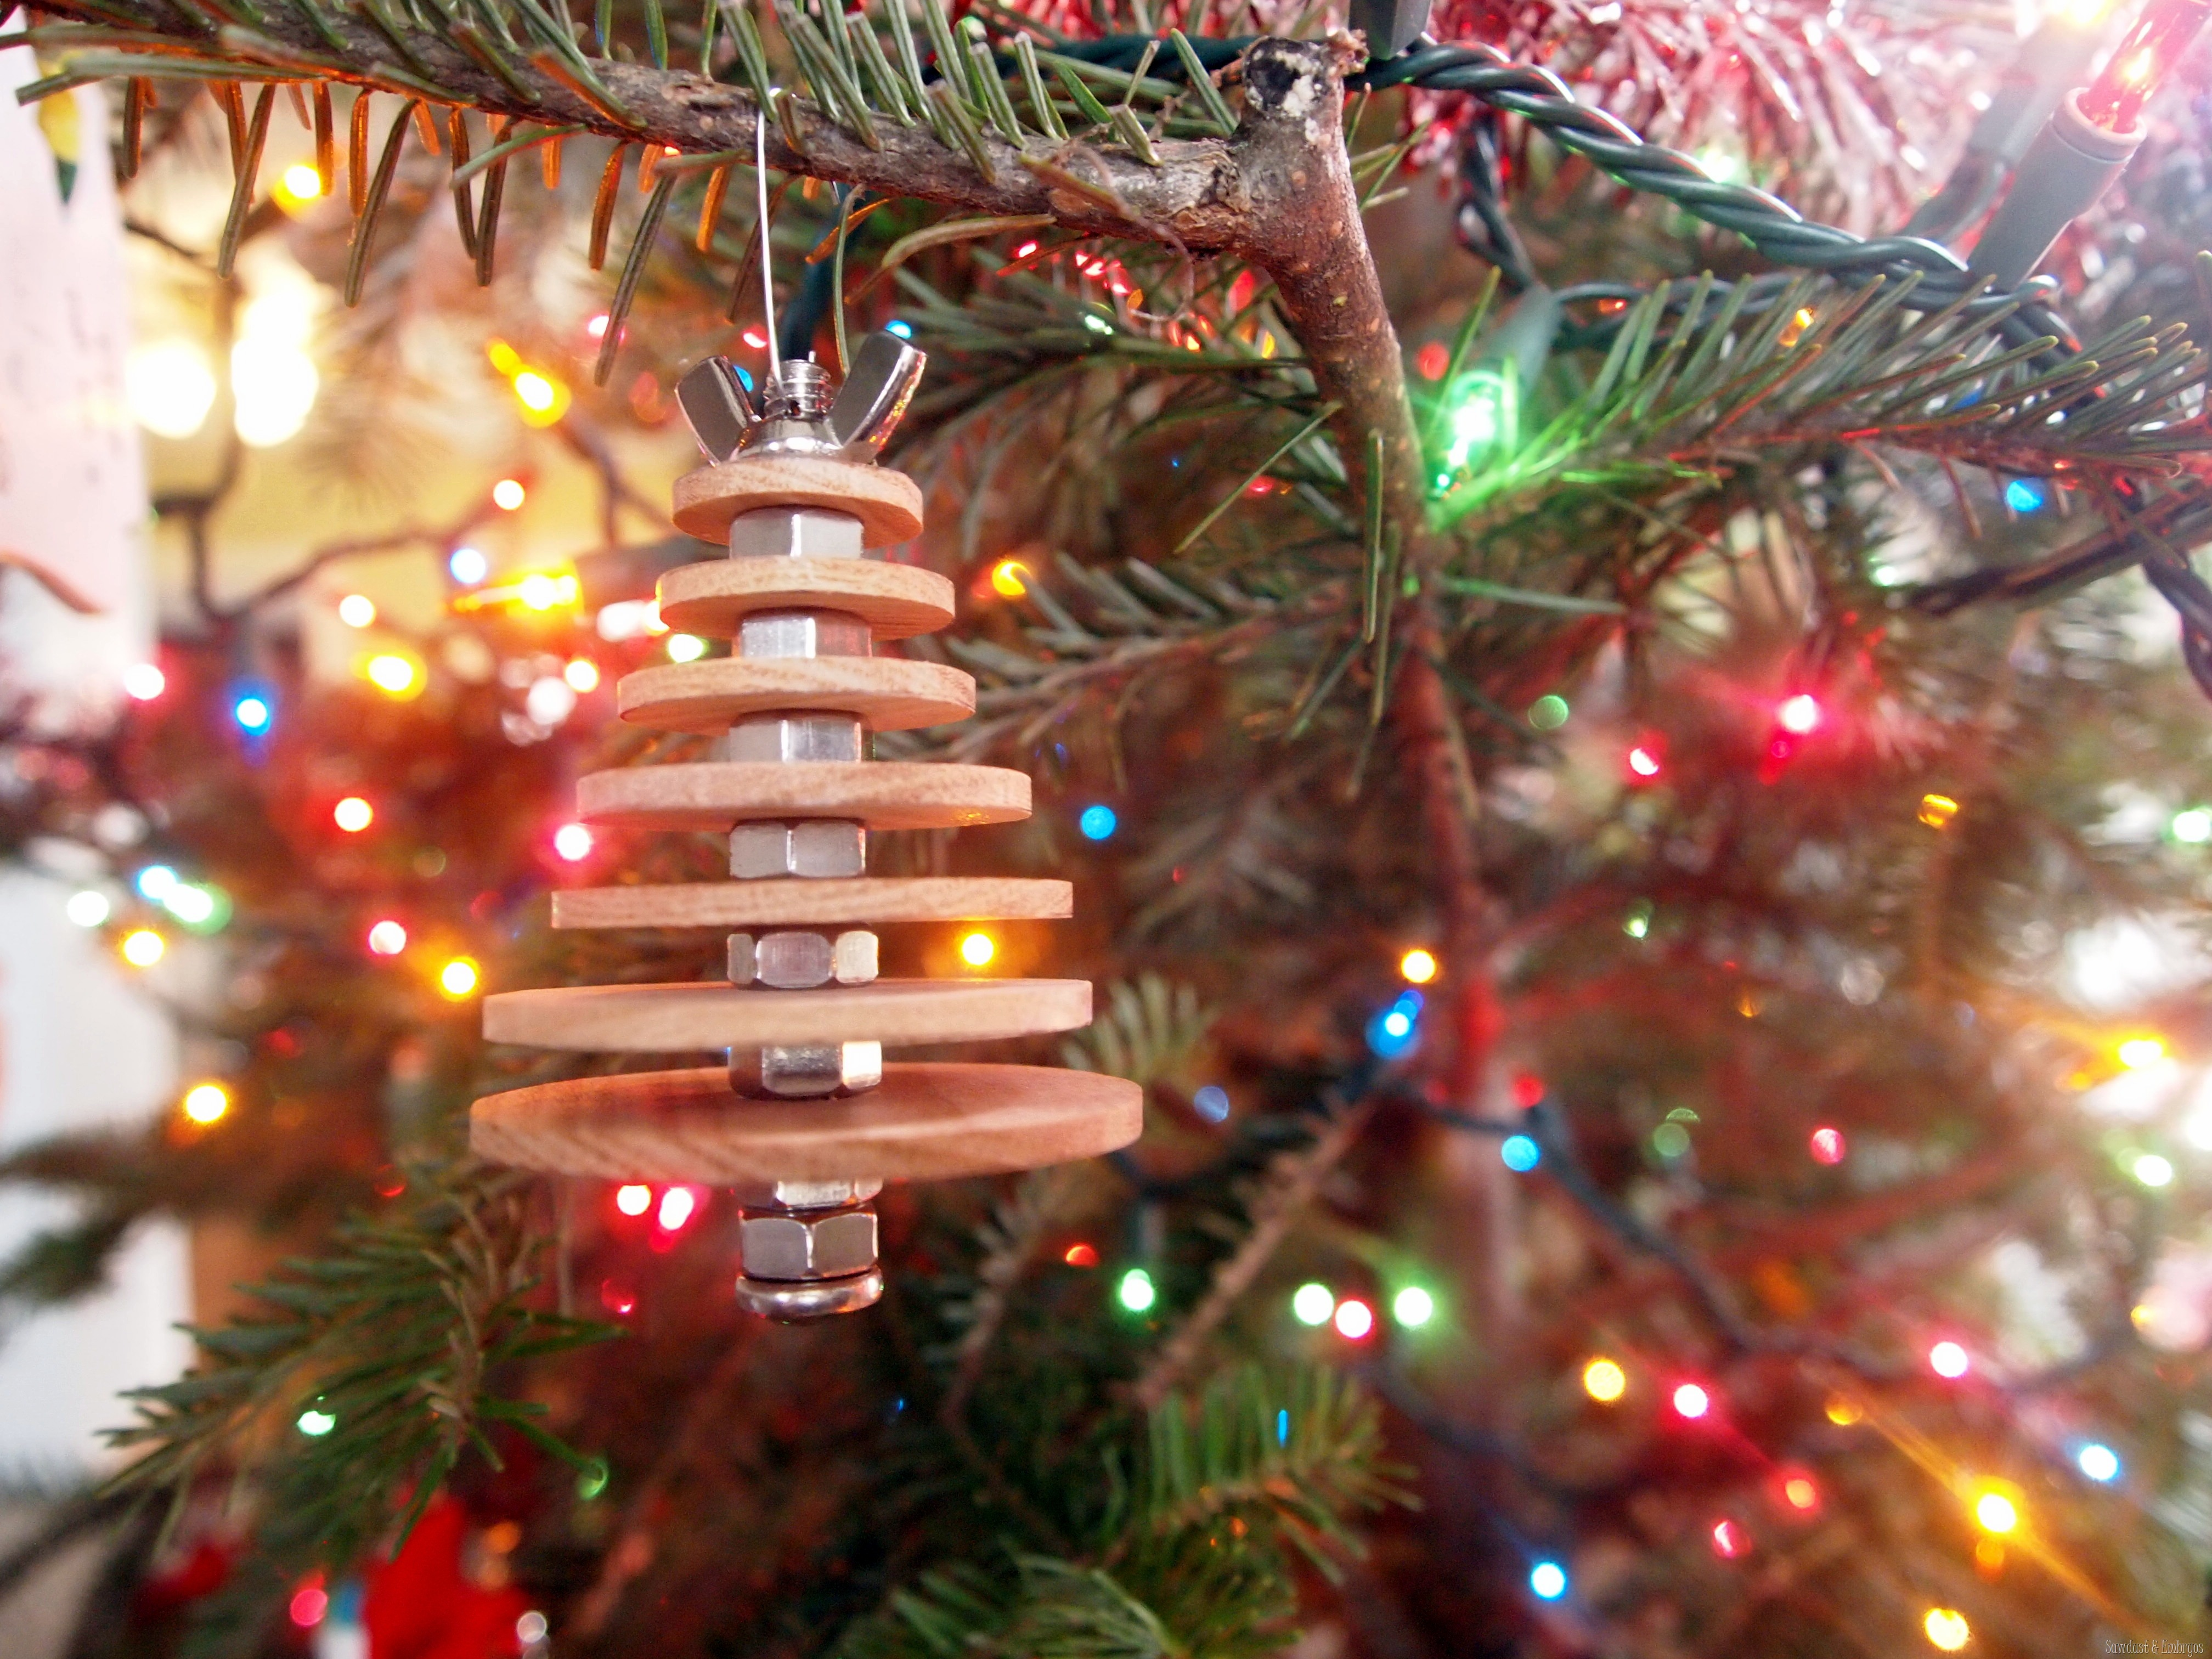 Yearly christmas ornaments - Diy Industrial Christmas Tree Ornament Using Basic Hardware And Wooden Discs